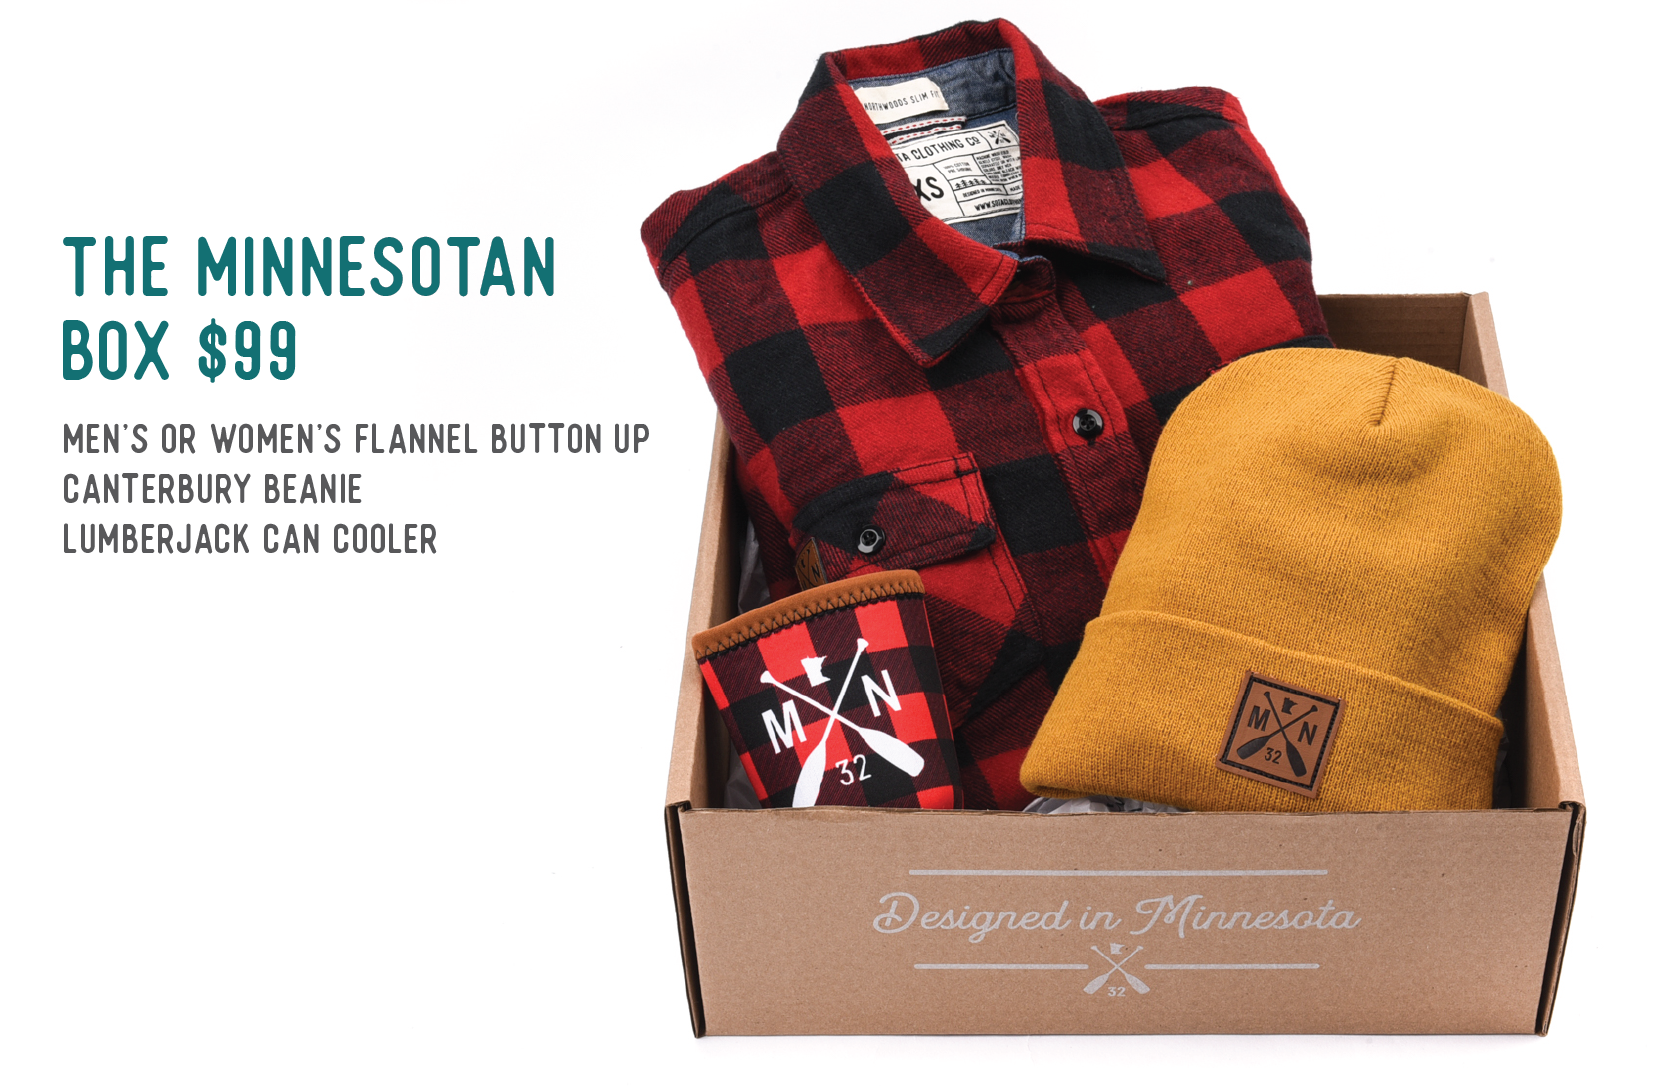 The Minnesotan Box $99